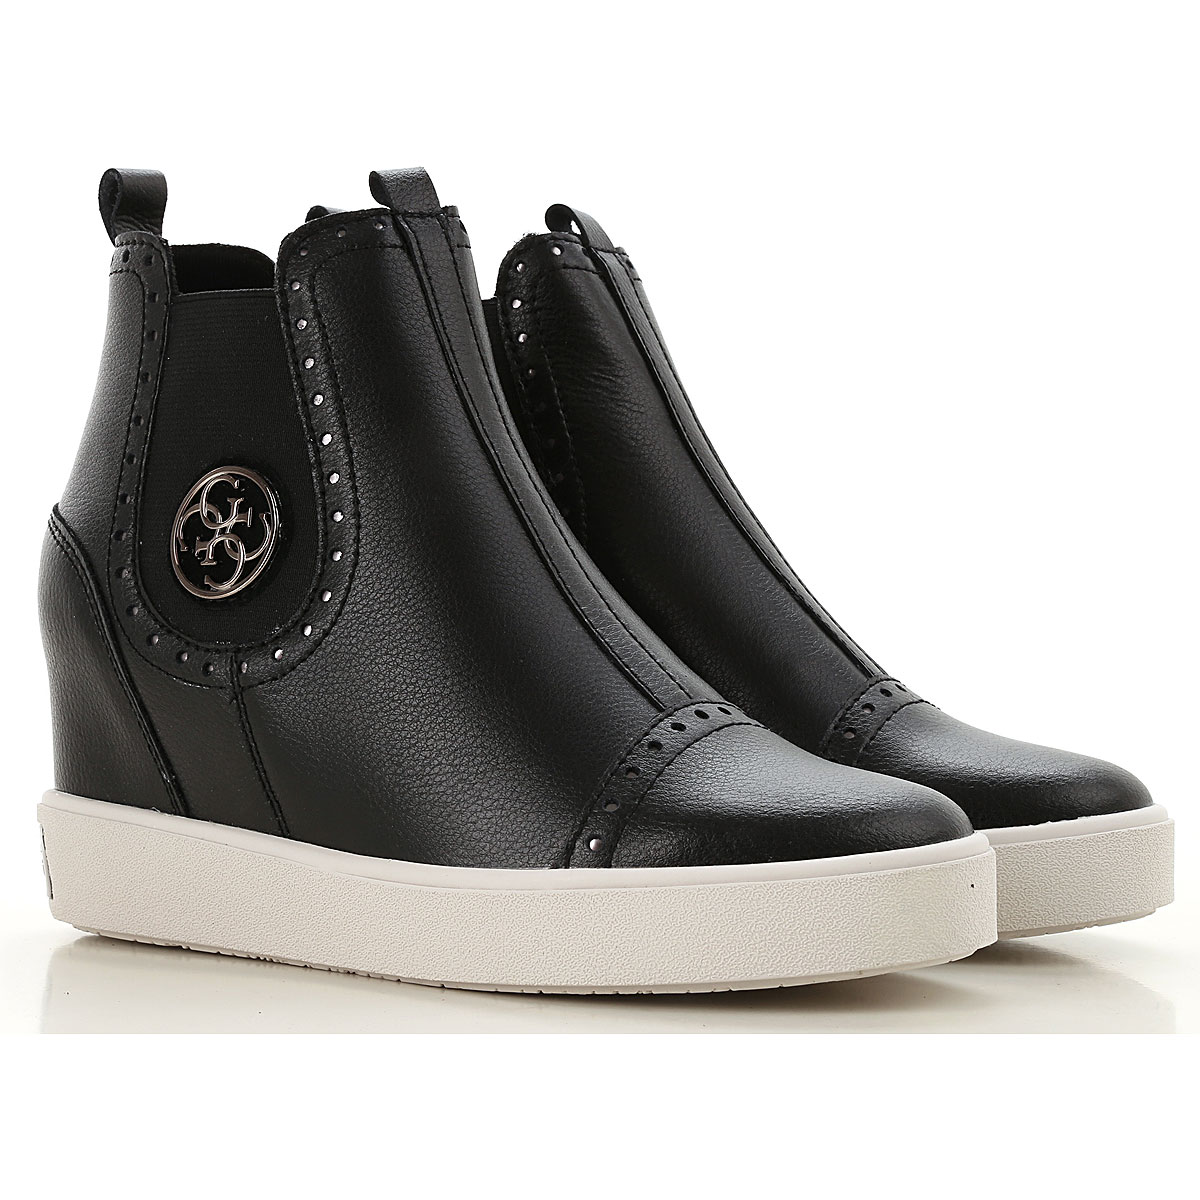 Image of Guess Boots for Women, Booties, Black, Leather, 2017, 10 5 6 7 8